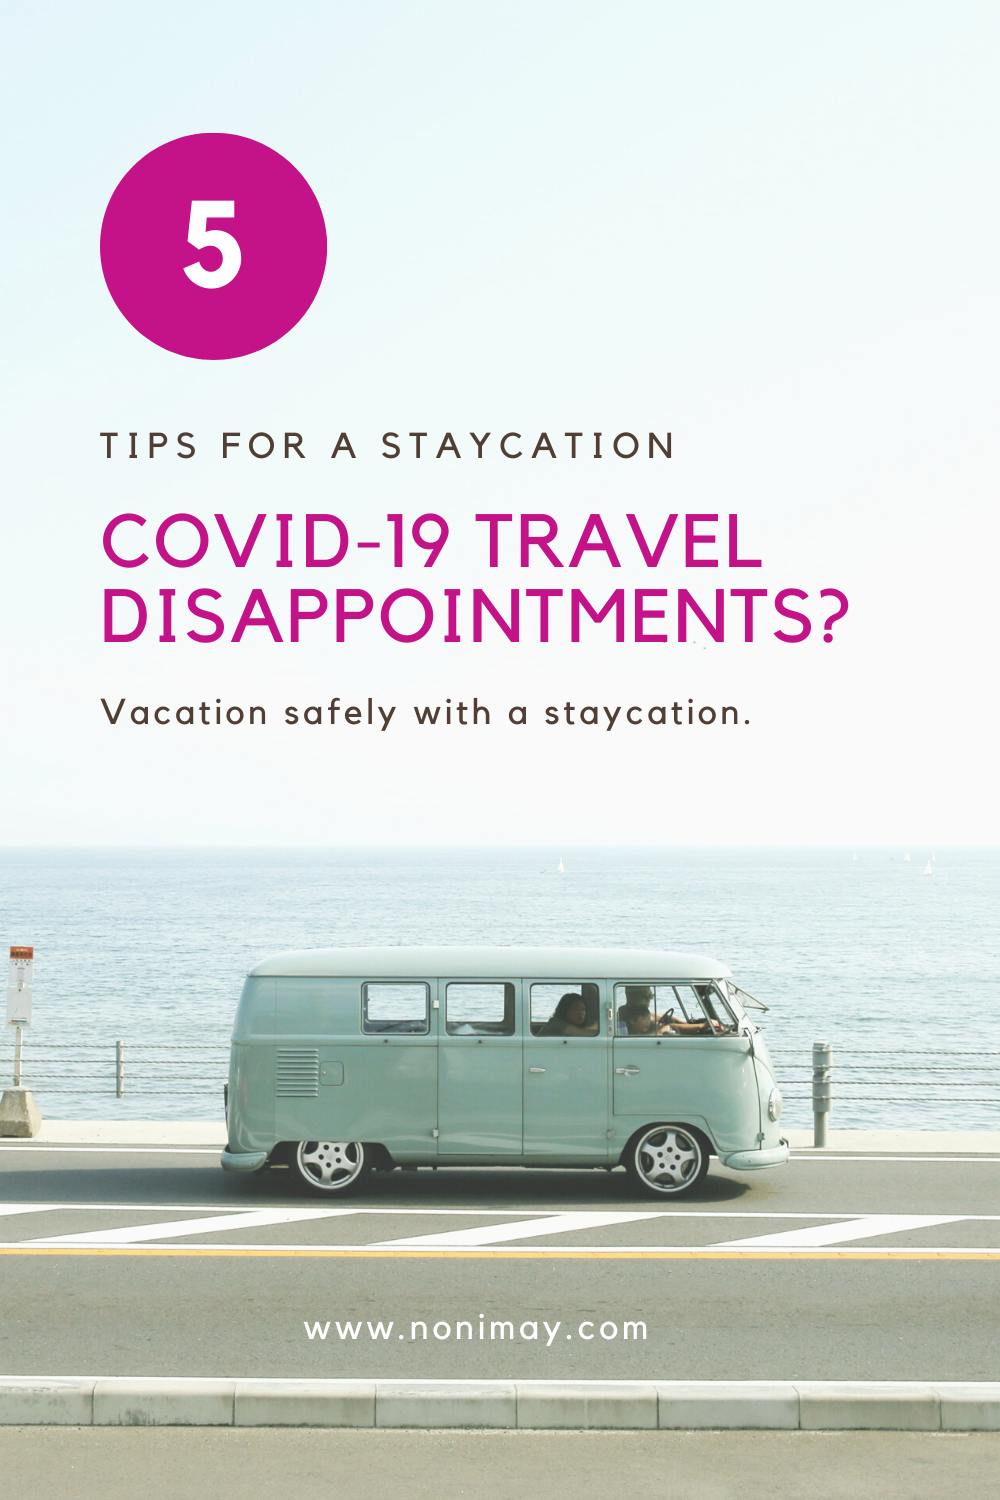 5 tips for a staycation when travel is not safe due to the corona virus